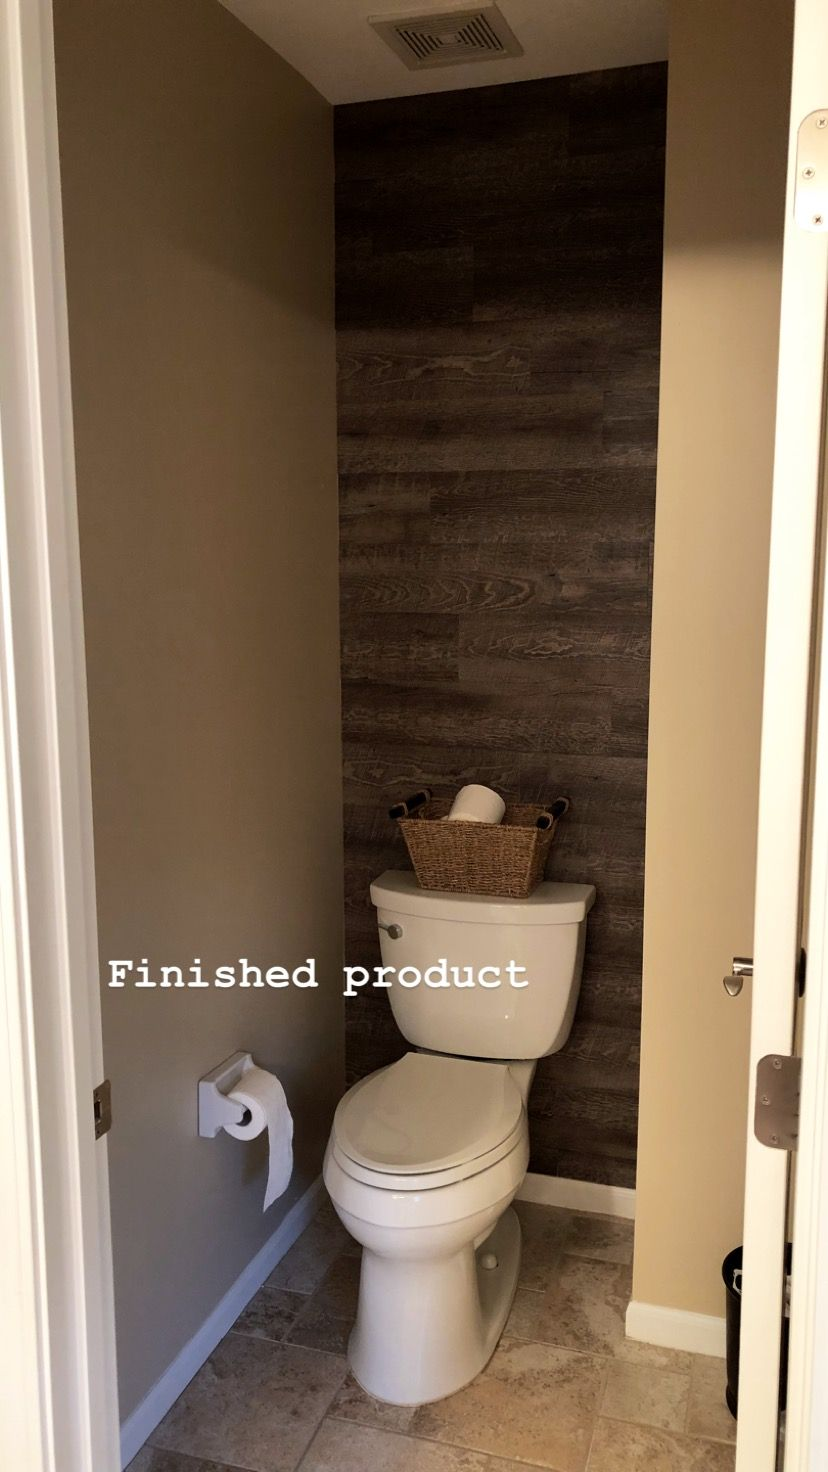 Faux Wood Accent Wall Peel And Stick Wood From Lowe S Wood Wall Bathroom Wood Accent Wall Peel And Stick Wood